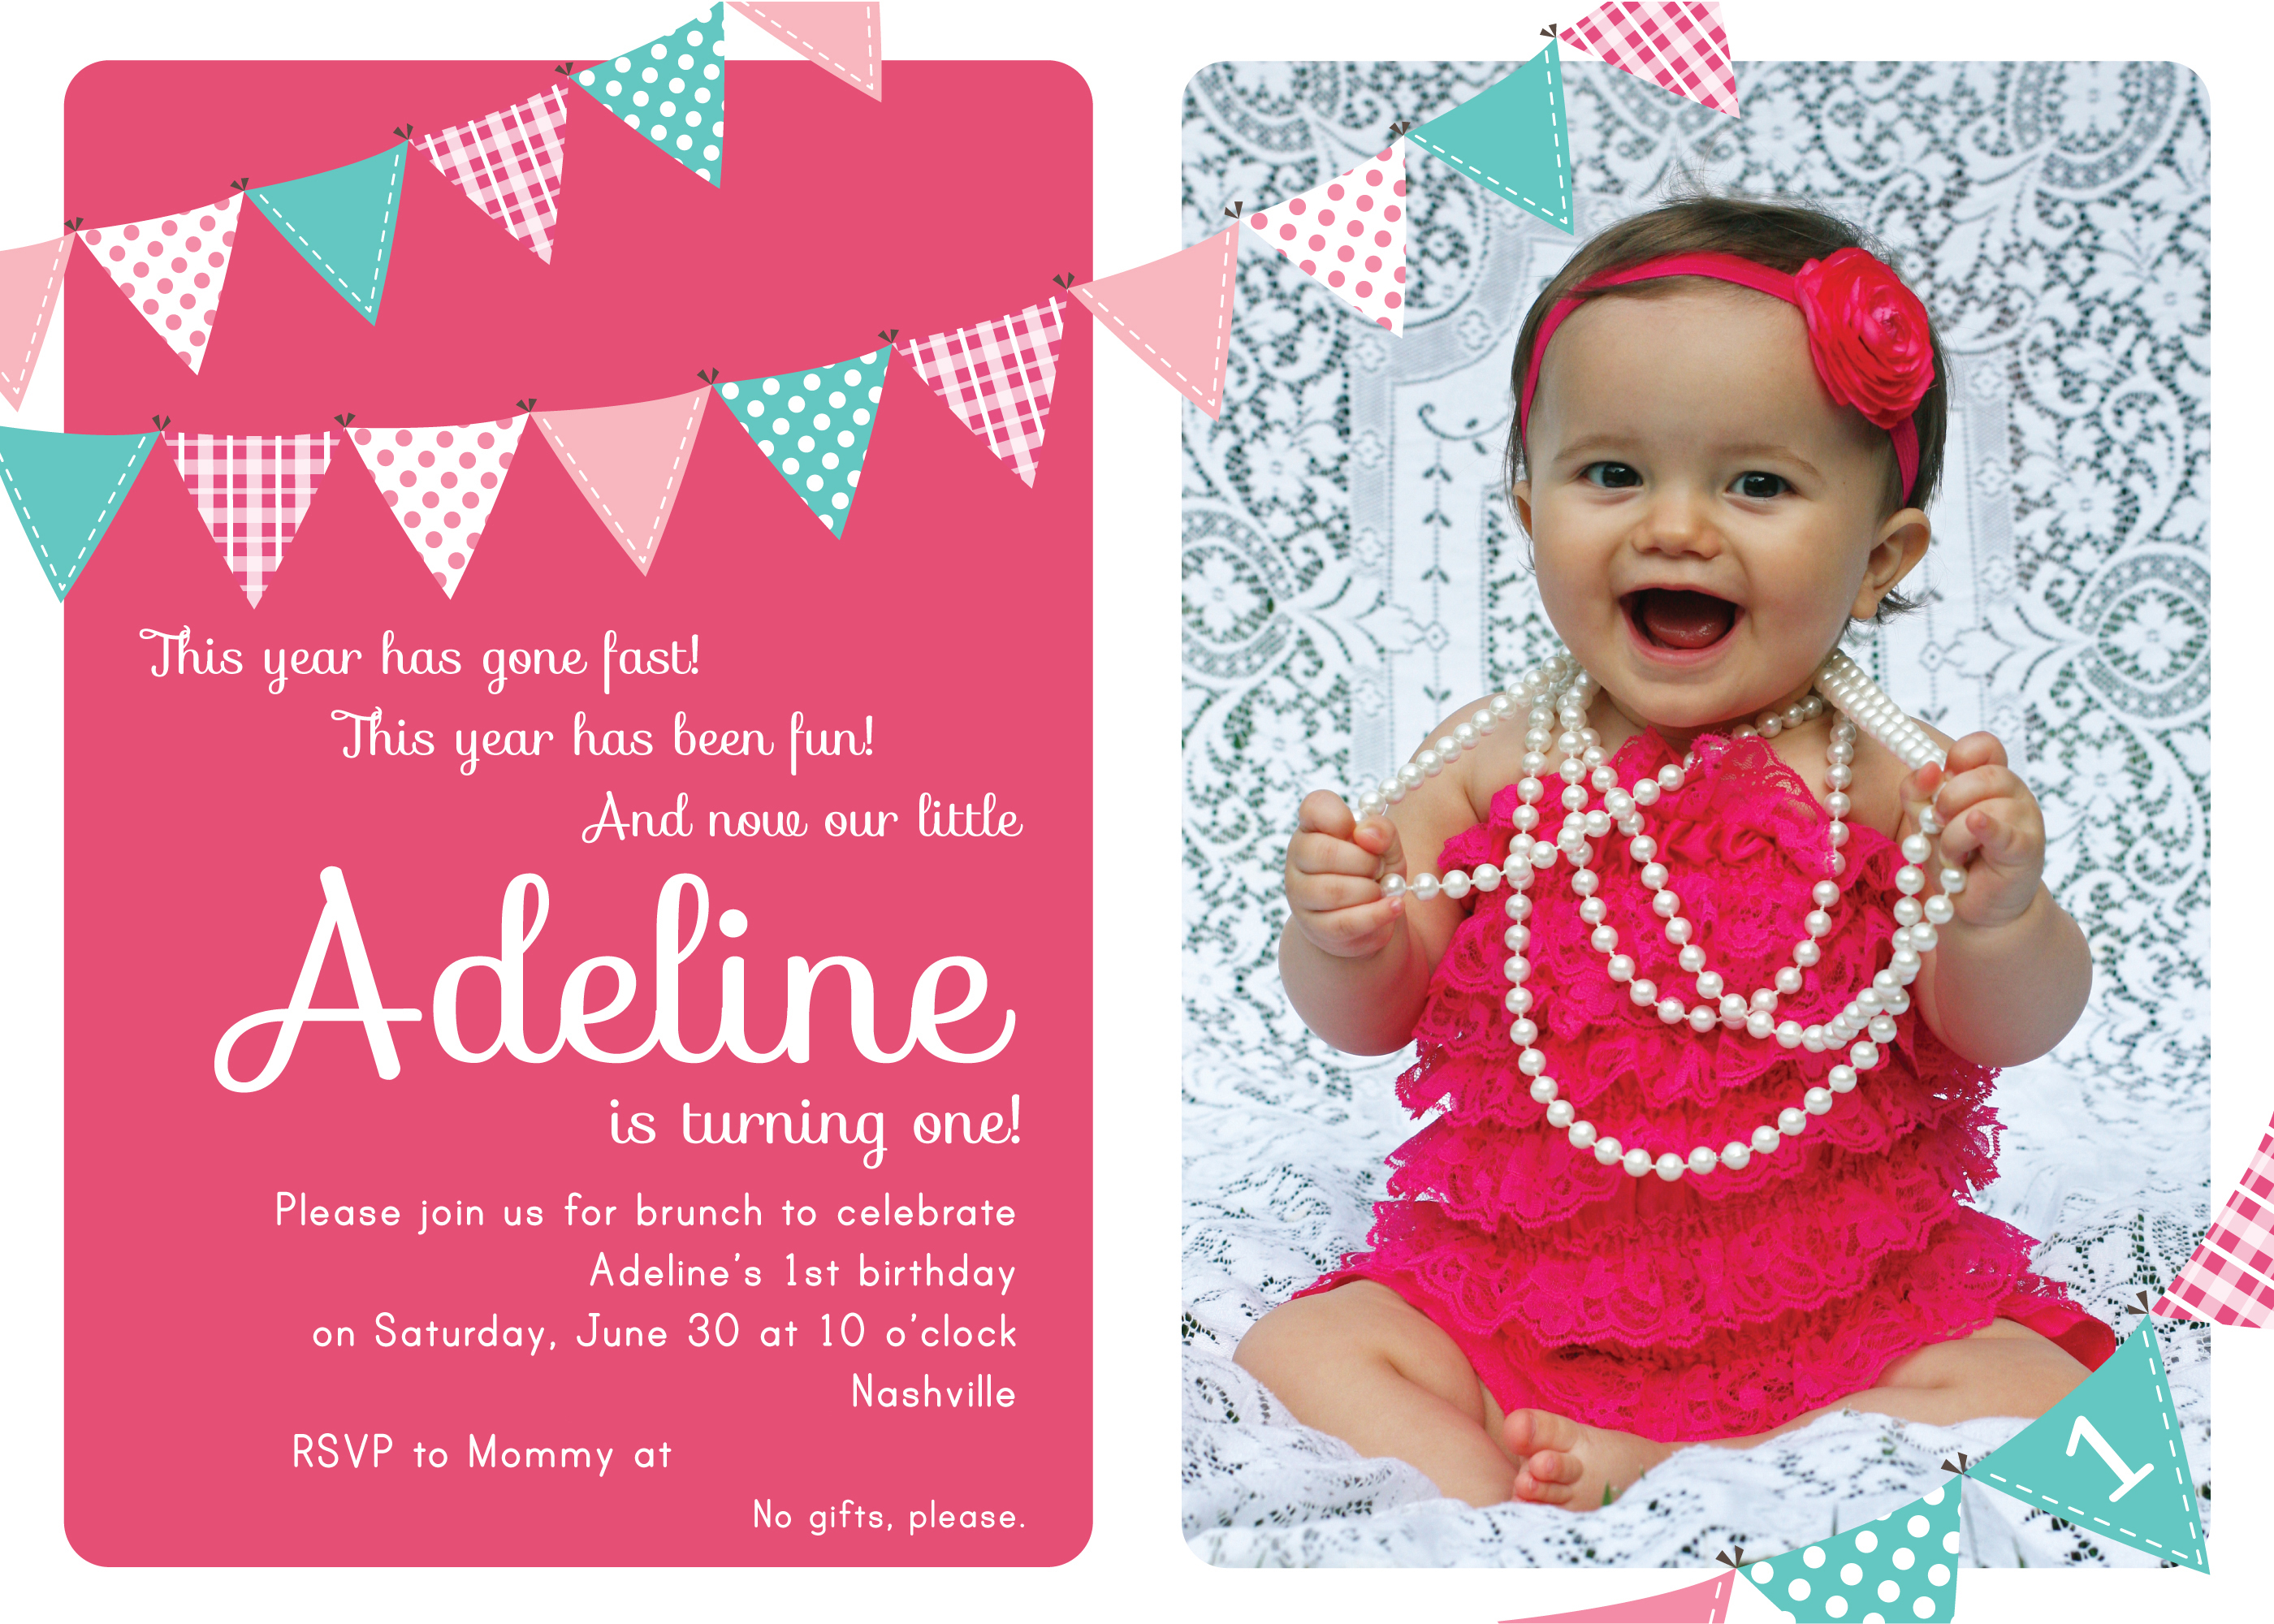 free 1st birthday invitation ecards ; how-to-first-birthday-invitations-girl-free-looking-design-of-first-birthday-invitations-girl-free-iidaemilia-egreeting-ecards-com